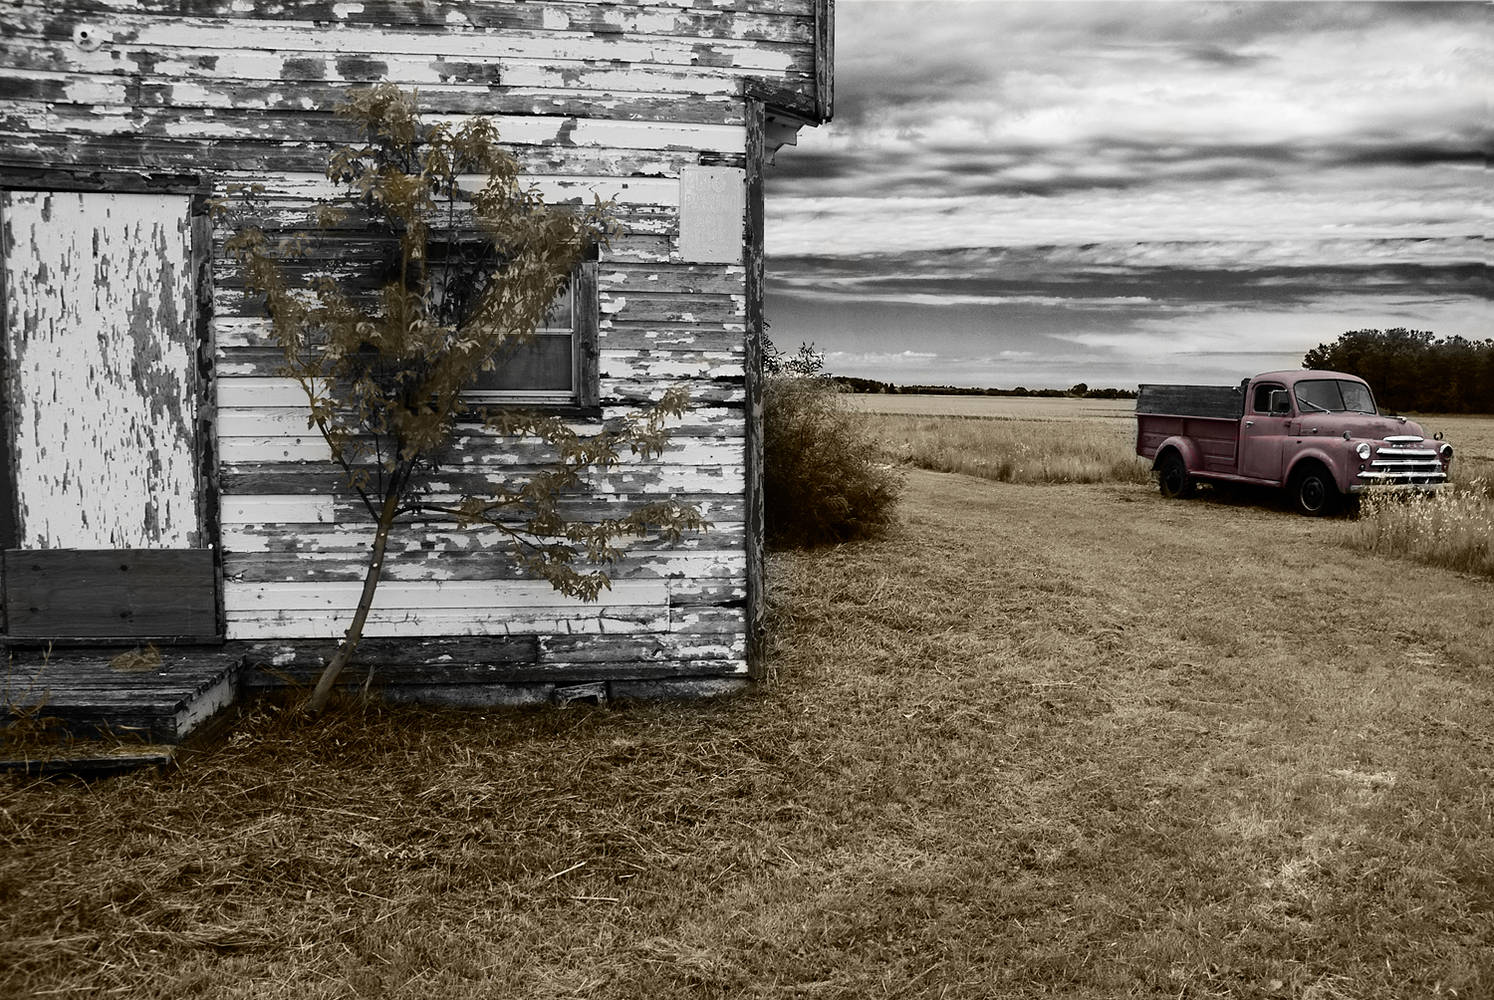 Weathered Store & Truck by Jim Friesen